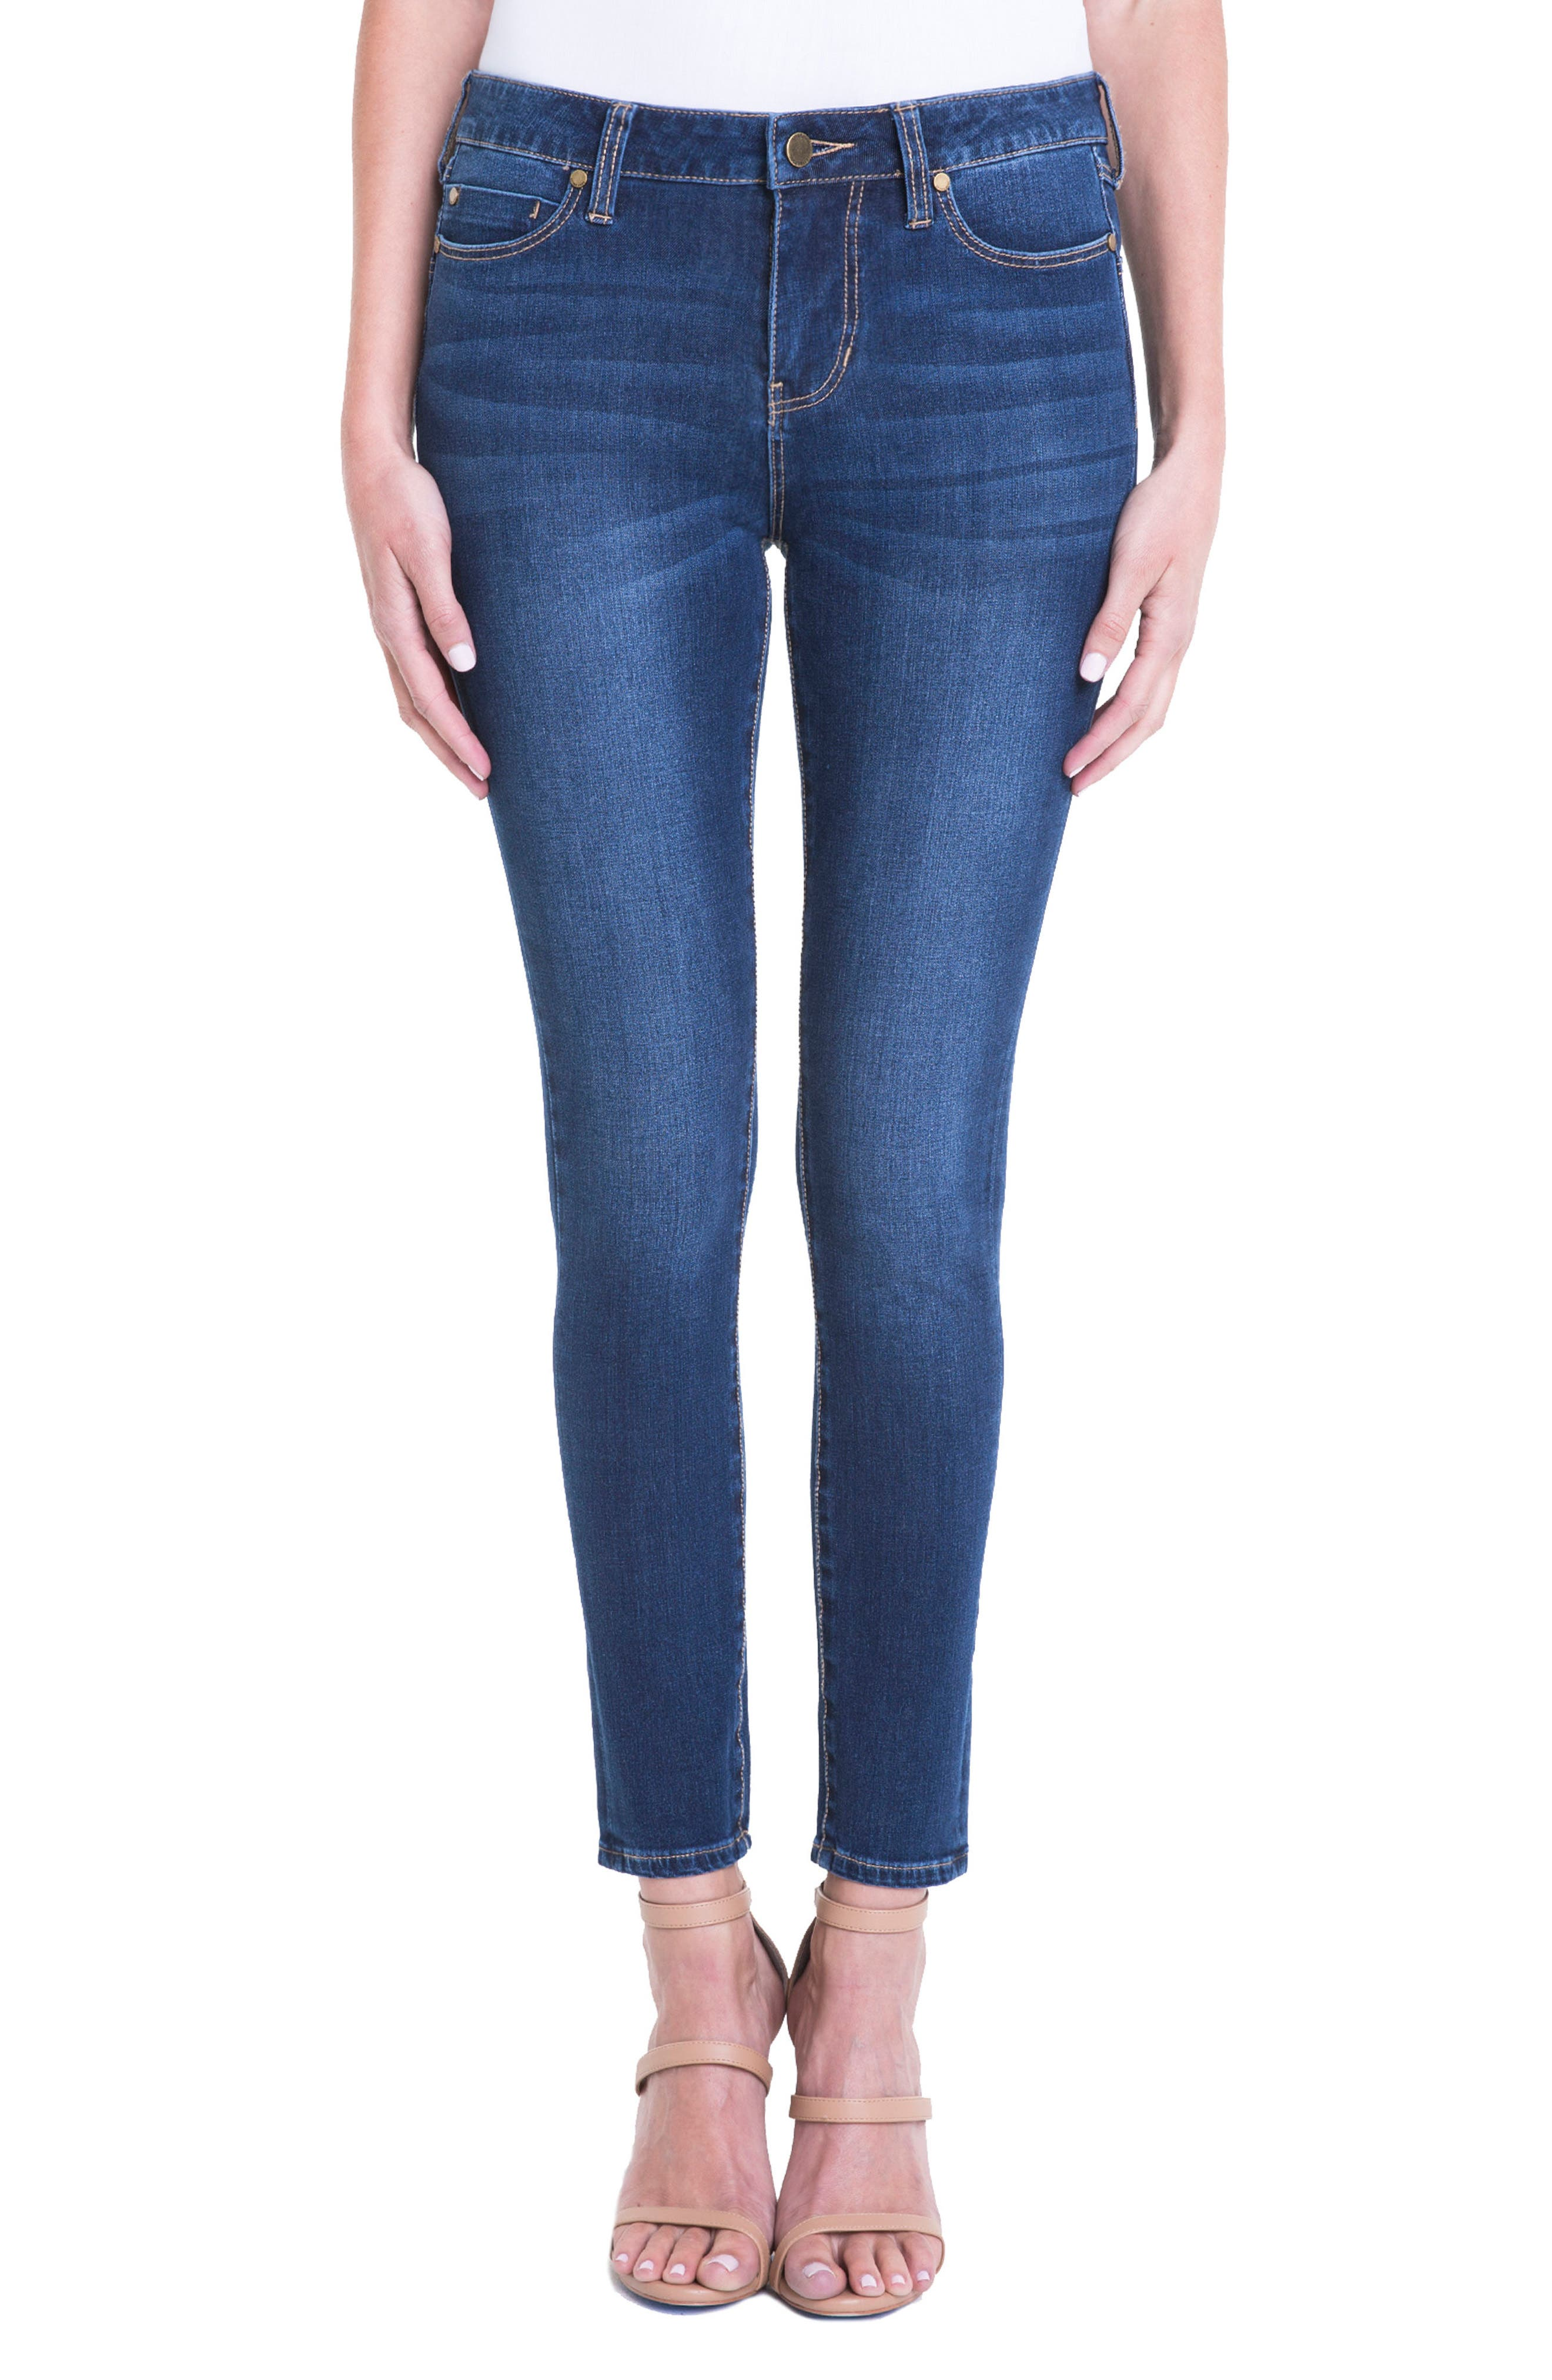 Main Image - Liverpool Jeans Company Piper Hugger Lift Sculpt Ankle Skinny Jeans (Lynx)